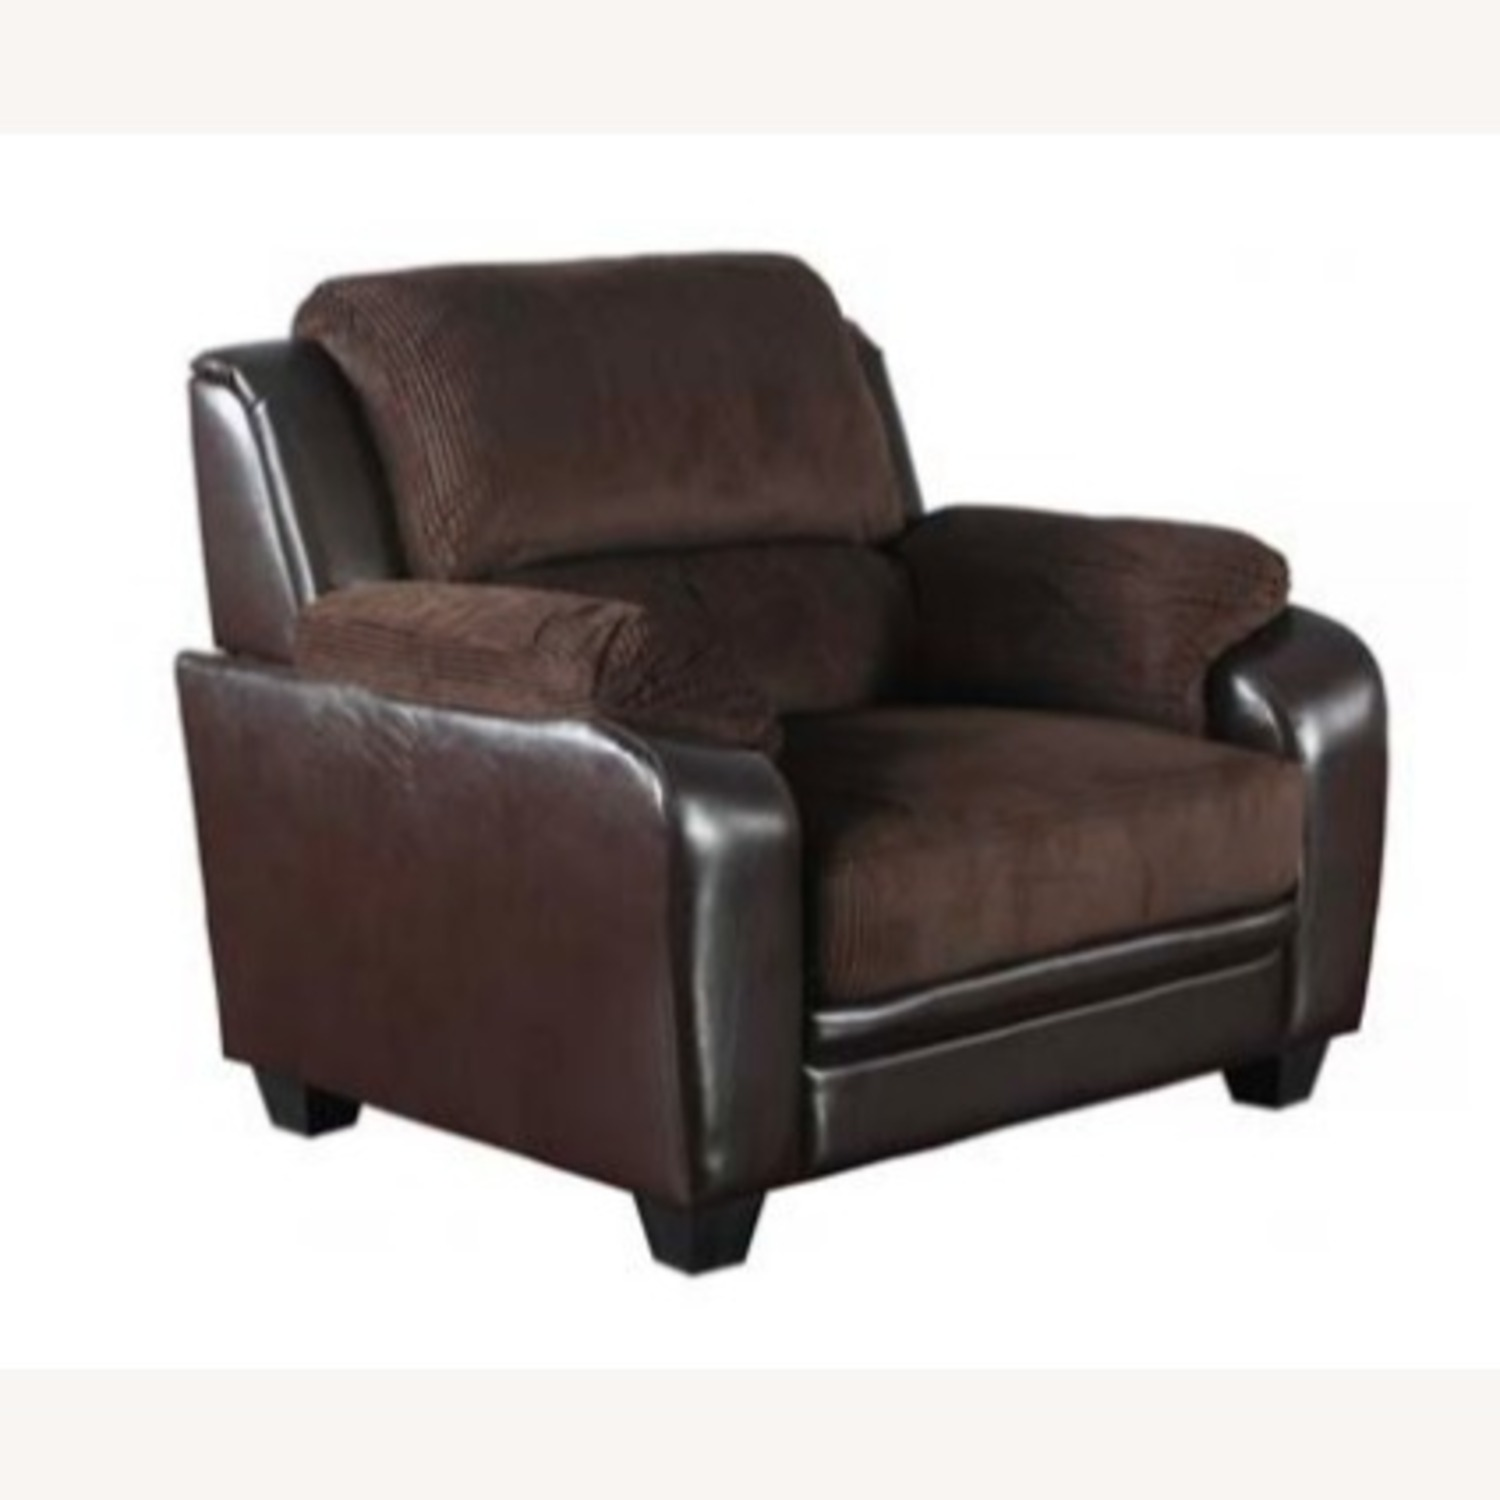 Chair In Rich Chocolate Leatherette - image-0